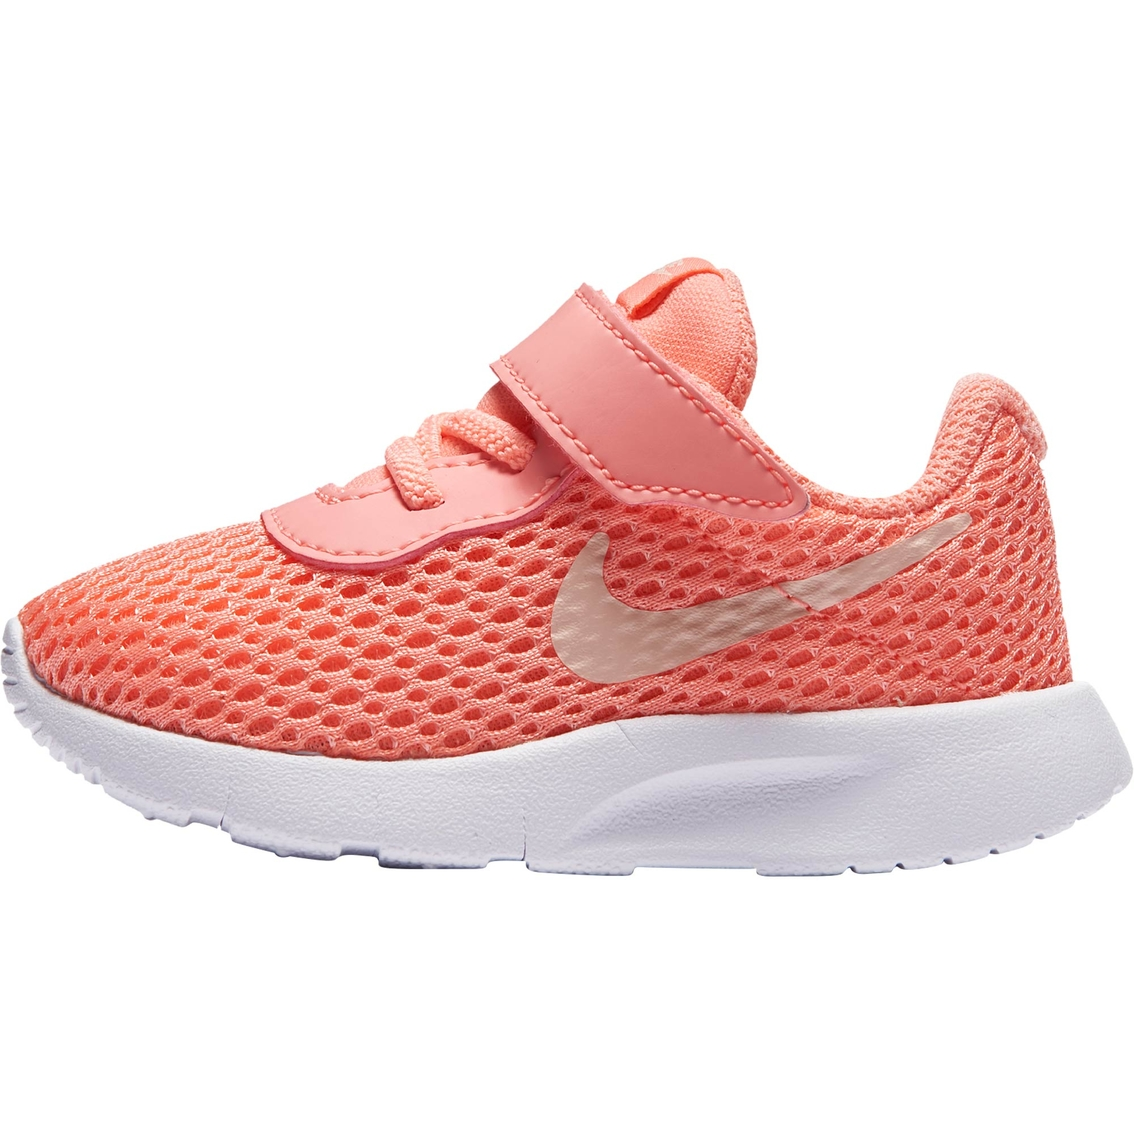 e5ad250231d6 Nike Toddler Girls Tanjun Running Shoes